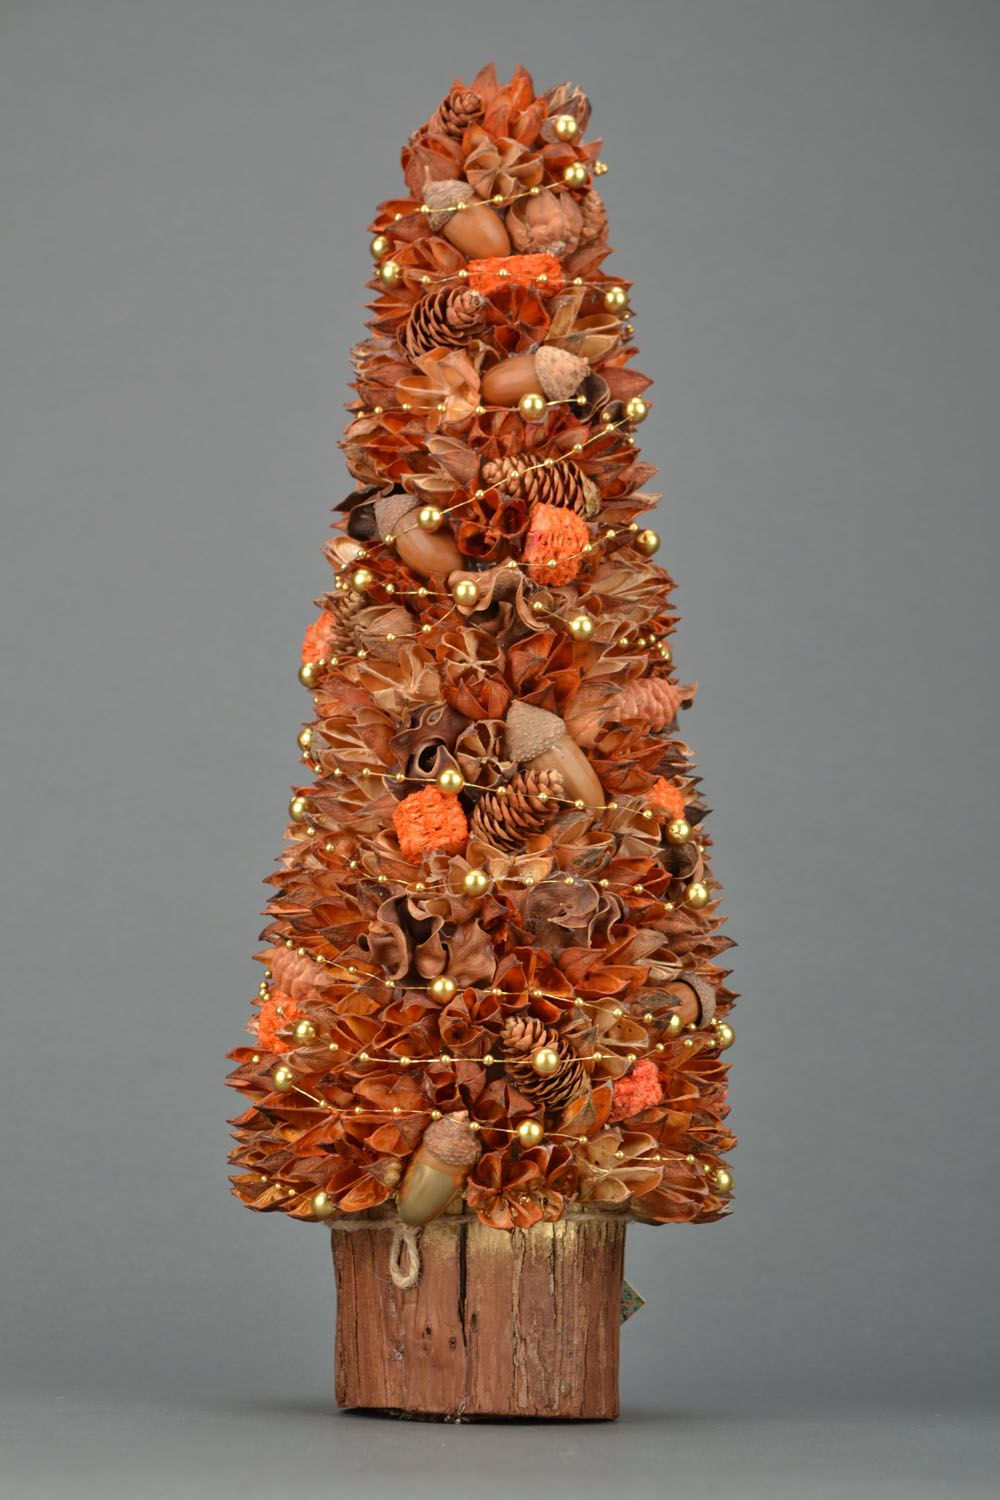 Decorative tree with natural materials photo 4